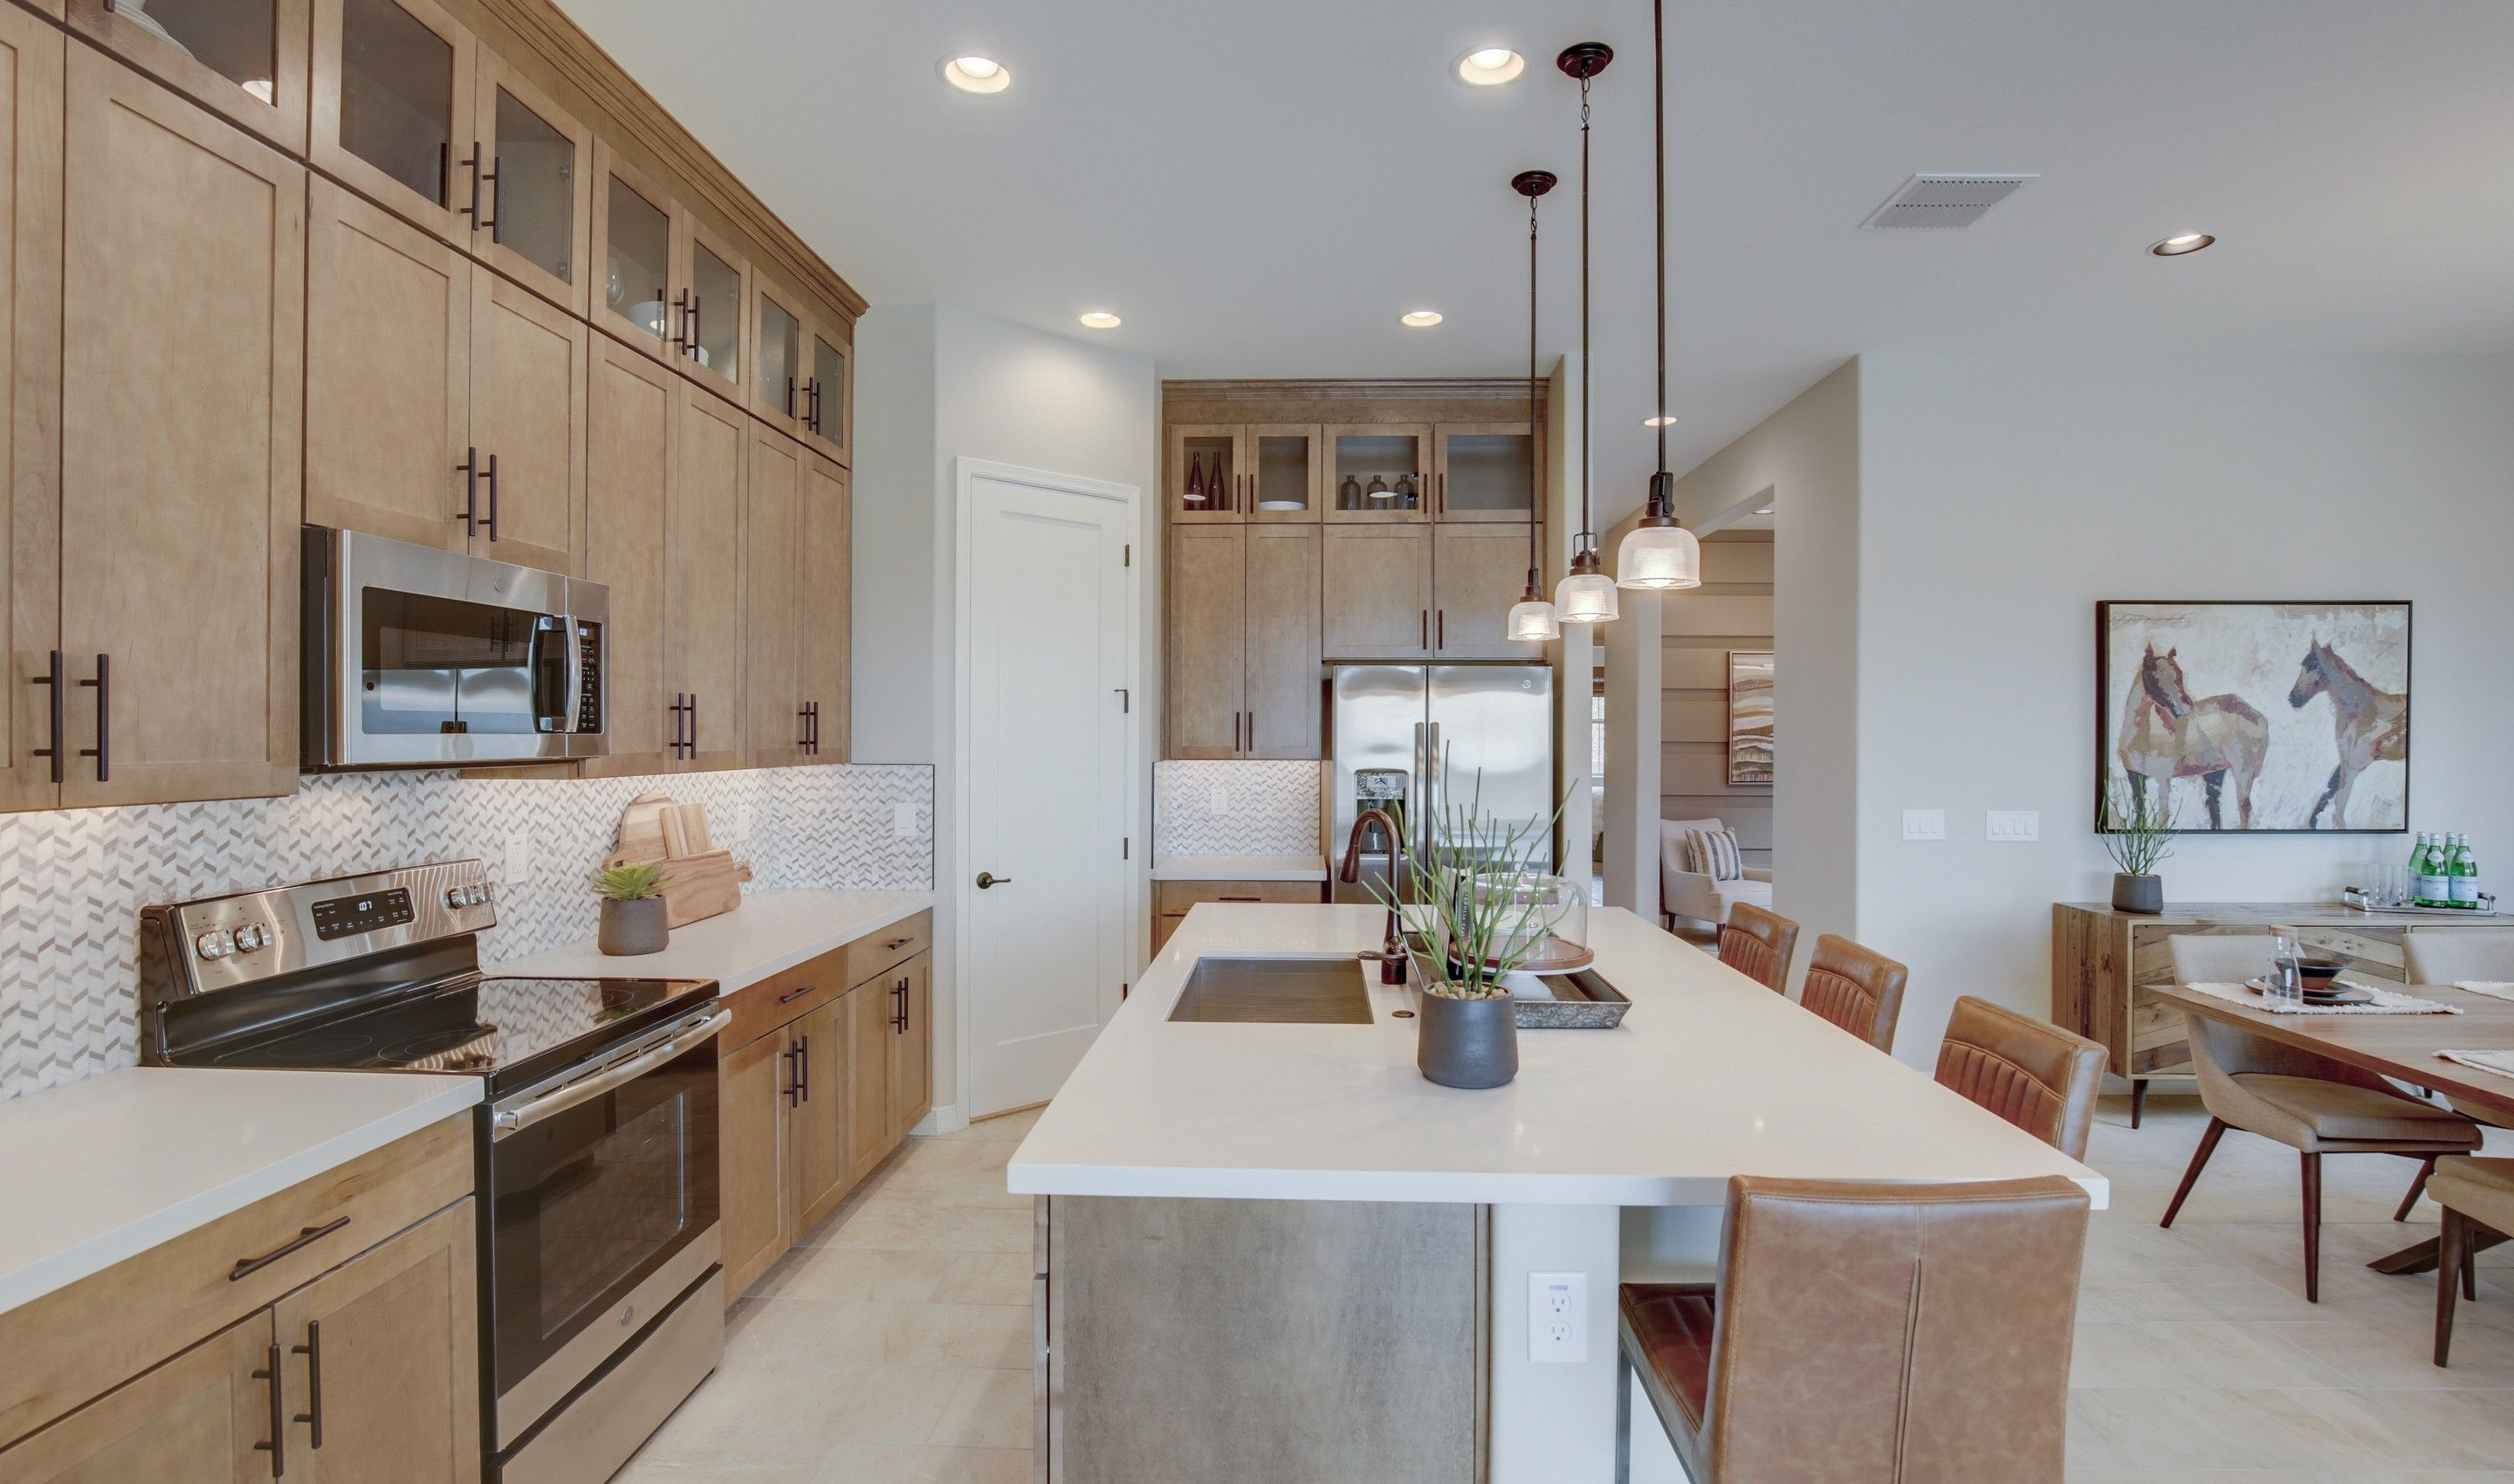 Kitchen featured in the Cavallo By K. Hovnanian's® Four Seasons in Phoenix-Mesa, AZ